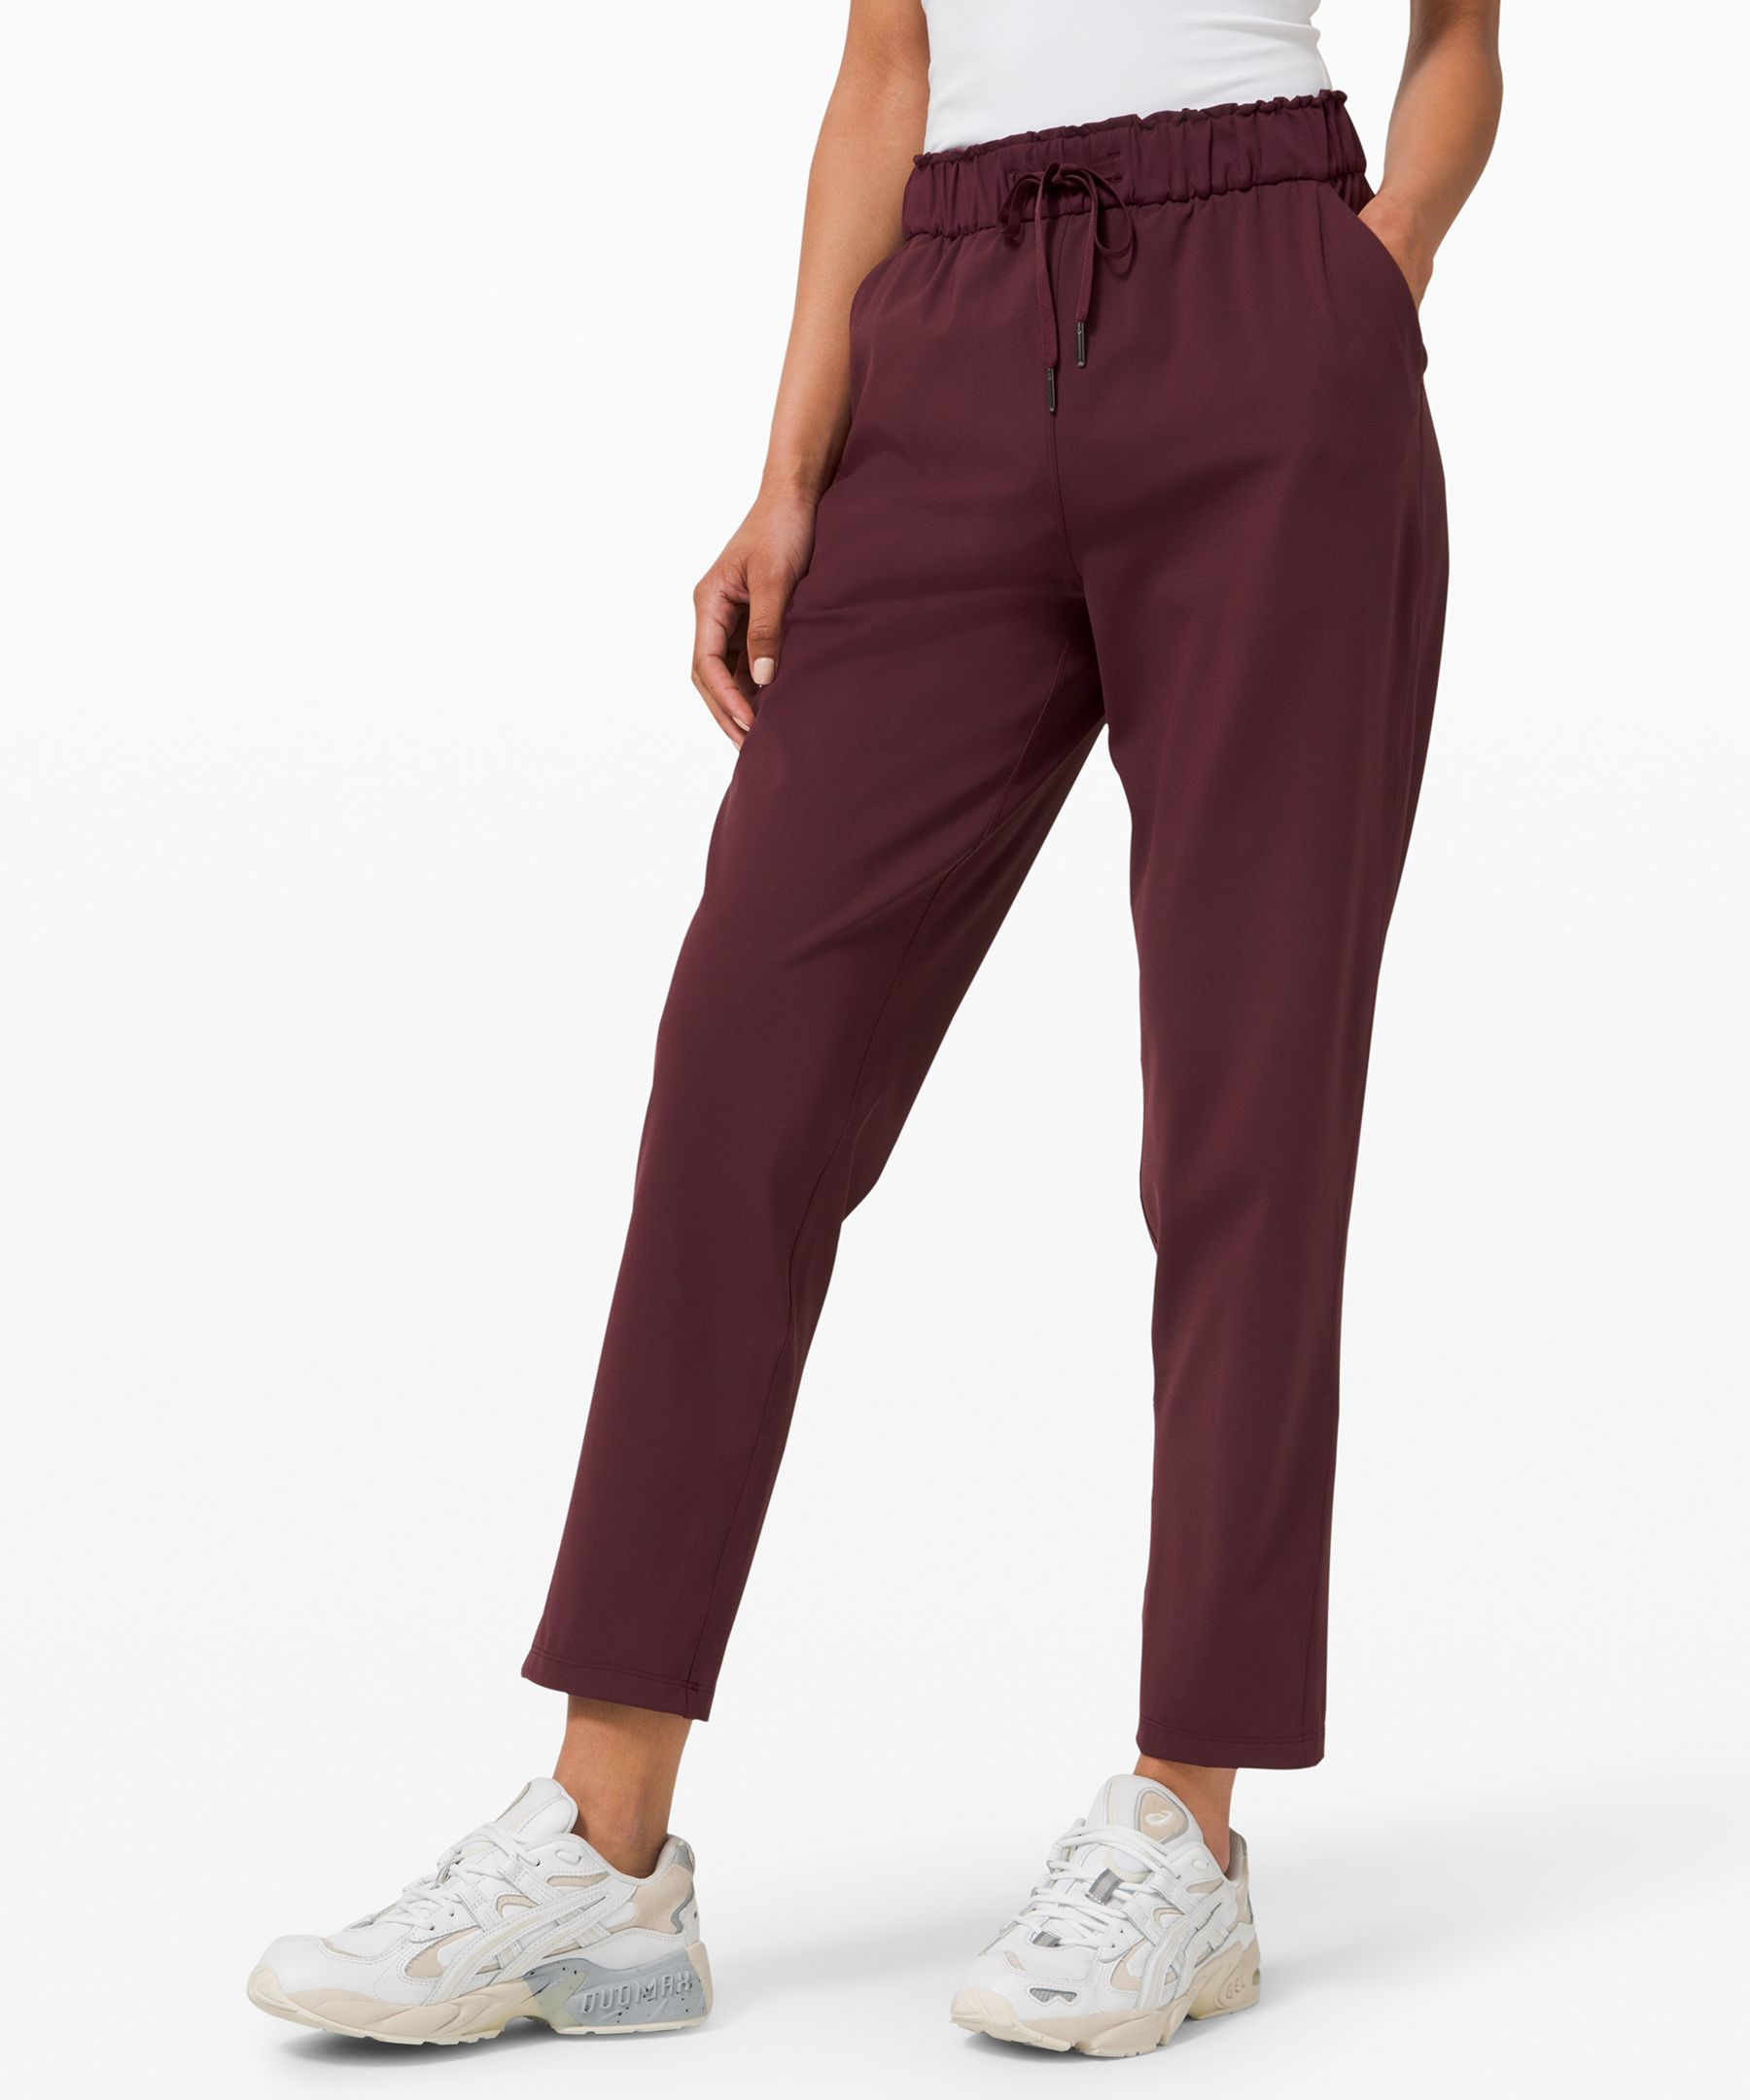 Whether you\\\'re hopping on a  plane or riding the subway,  these versatile,  relaxed-fitting pants have you  covered.